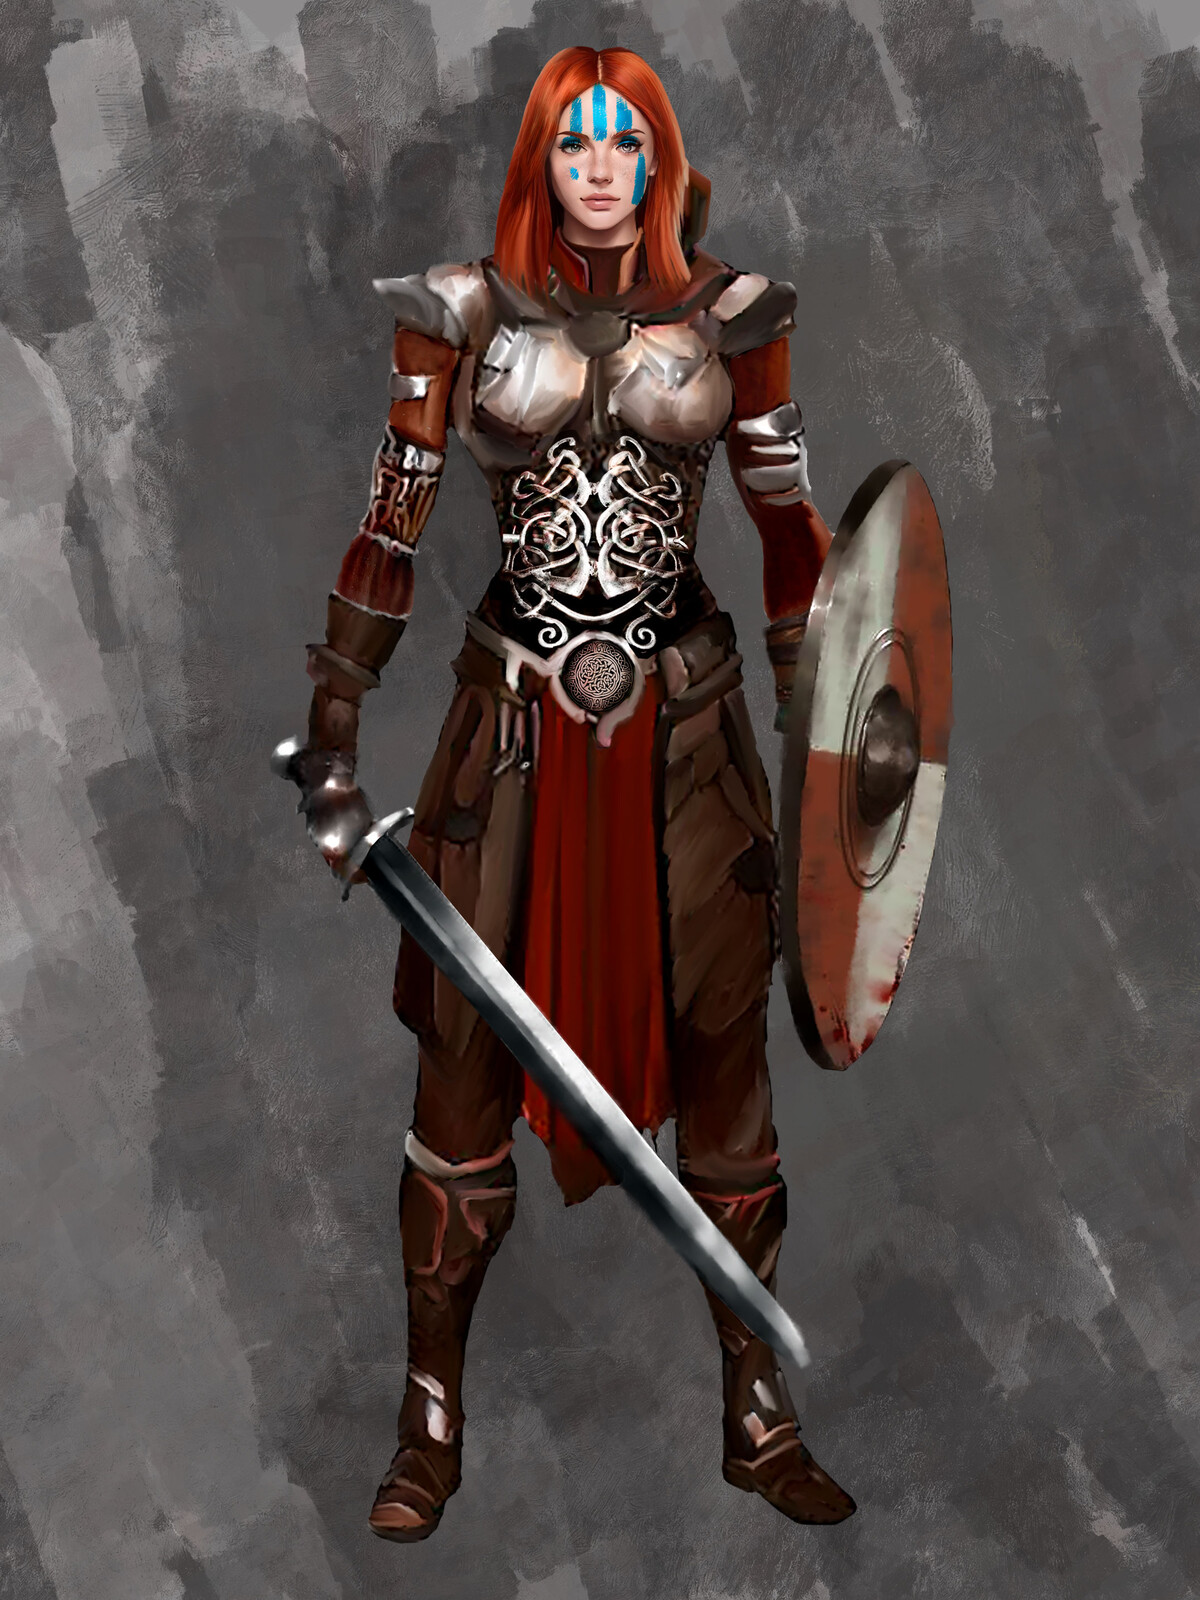 Eldrid the Shield Maiden